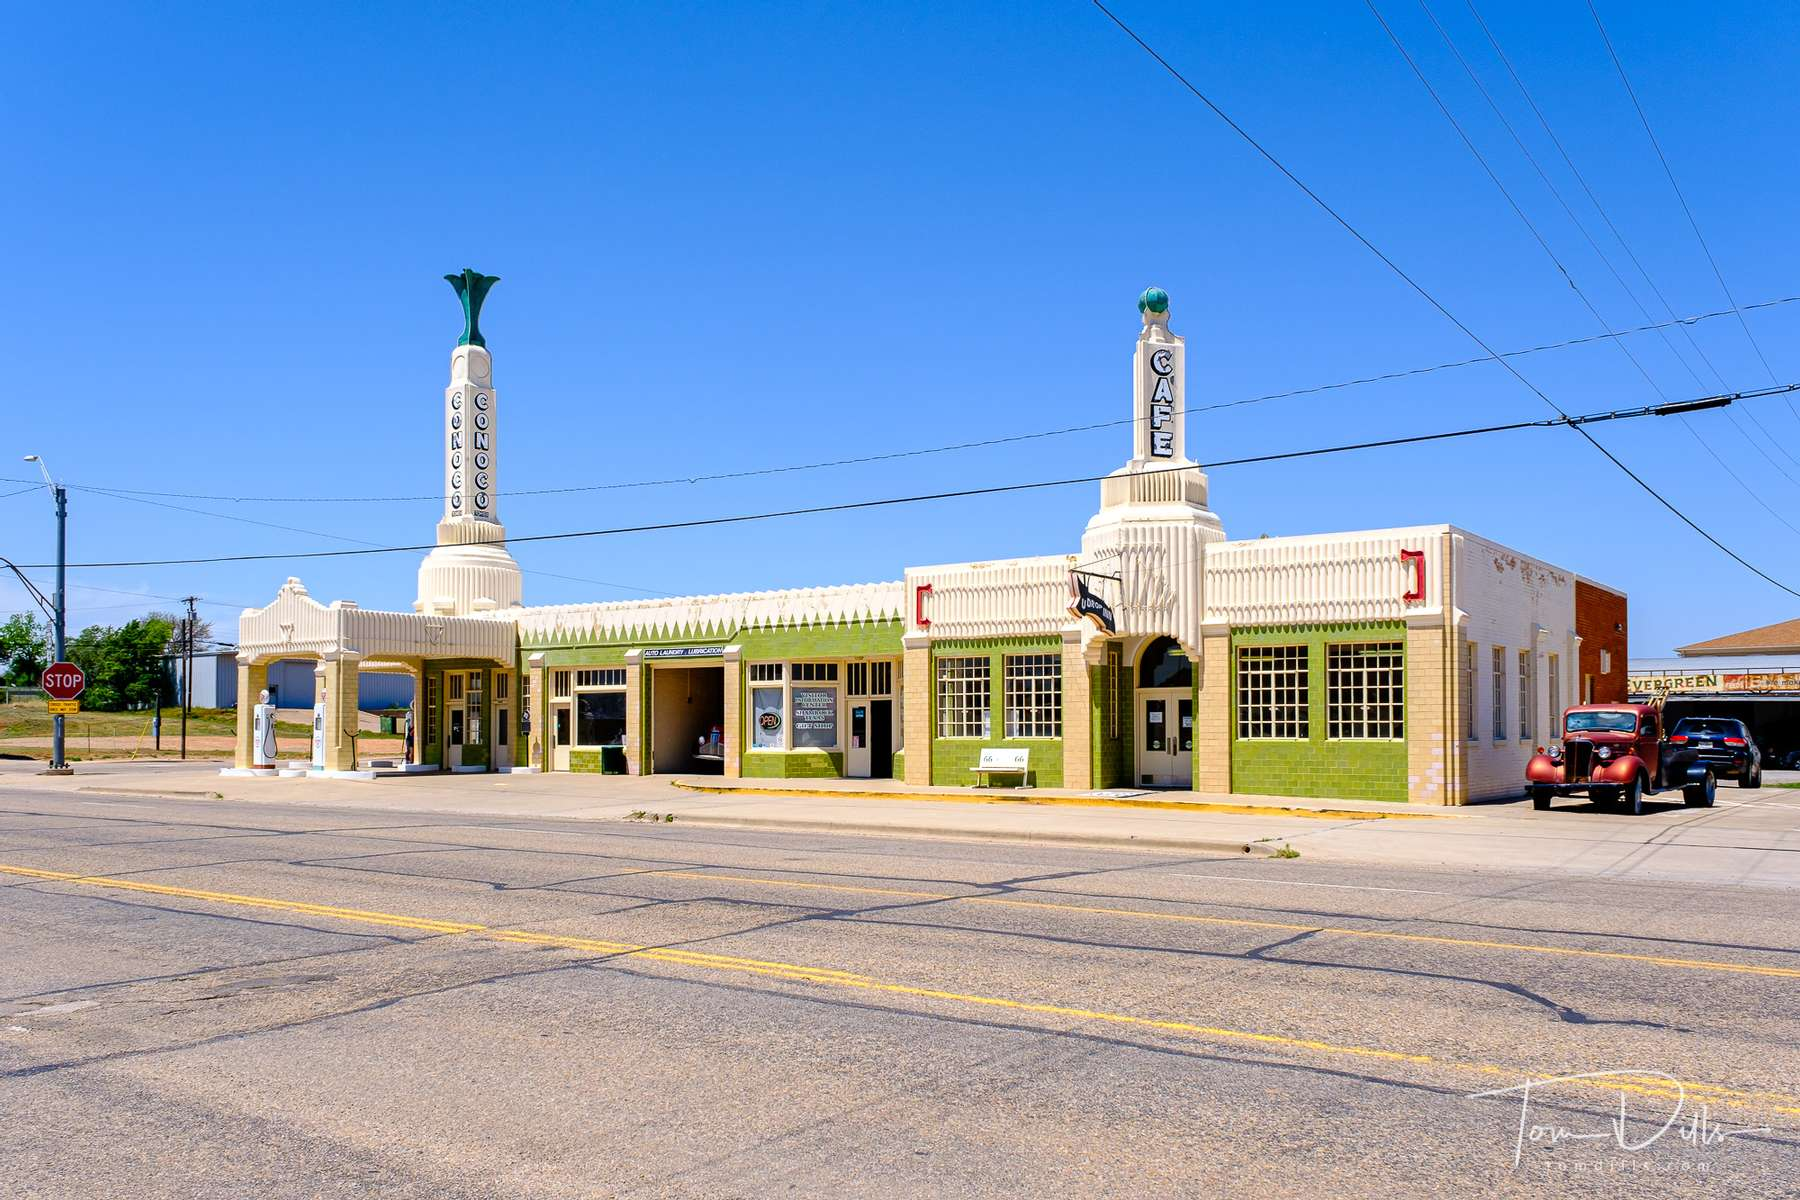 {quote}Conoco Tower Station{quote} Old gas station currently occupied by the local tourist information center on Historic Route 66 in Shamrock, Texas